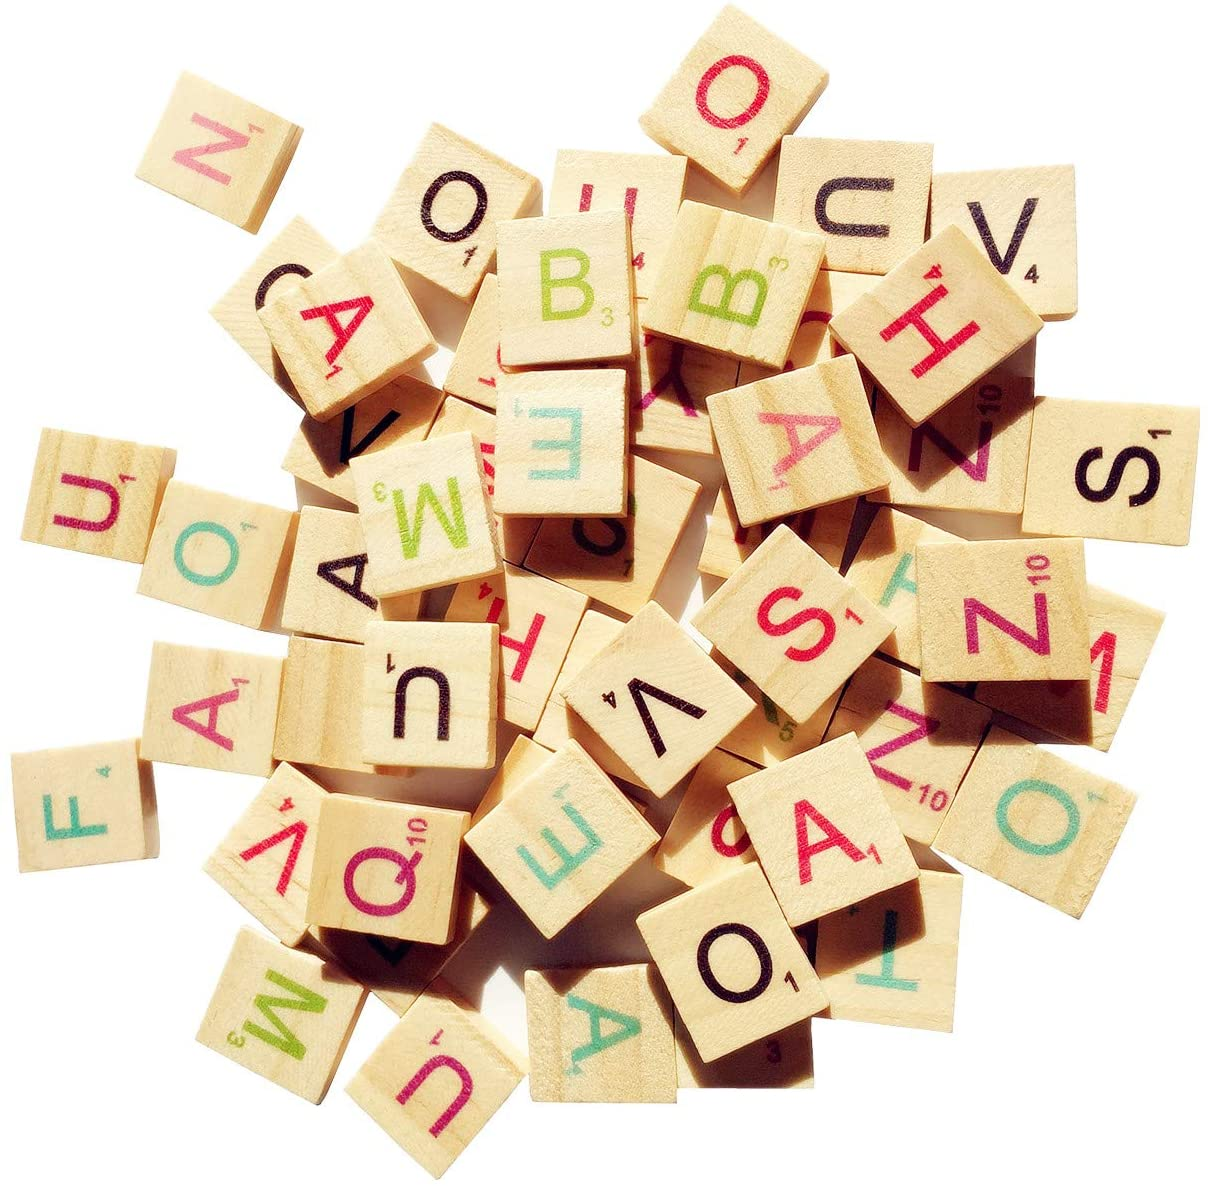 Abbaoww 300 Pcs Wood Colorful Scrabble Tiles Letter Tiles Wood Pieces for Crafts, Pendants, Spelling and Scrapbook